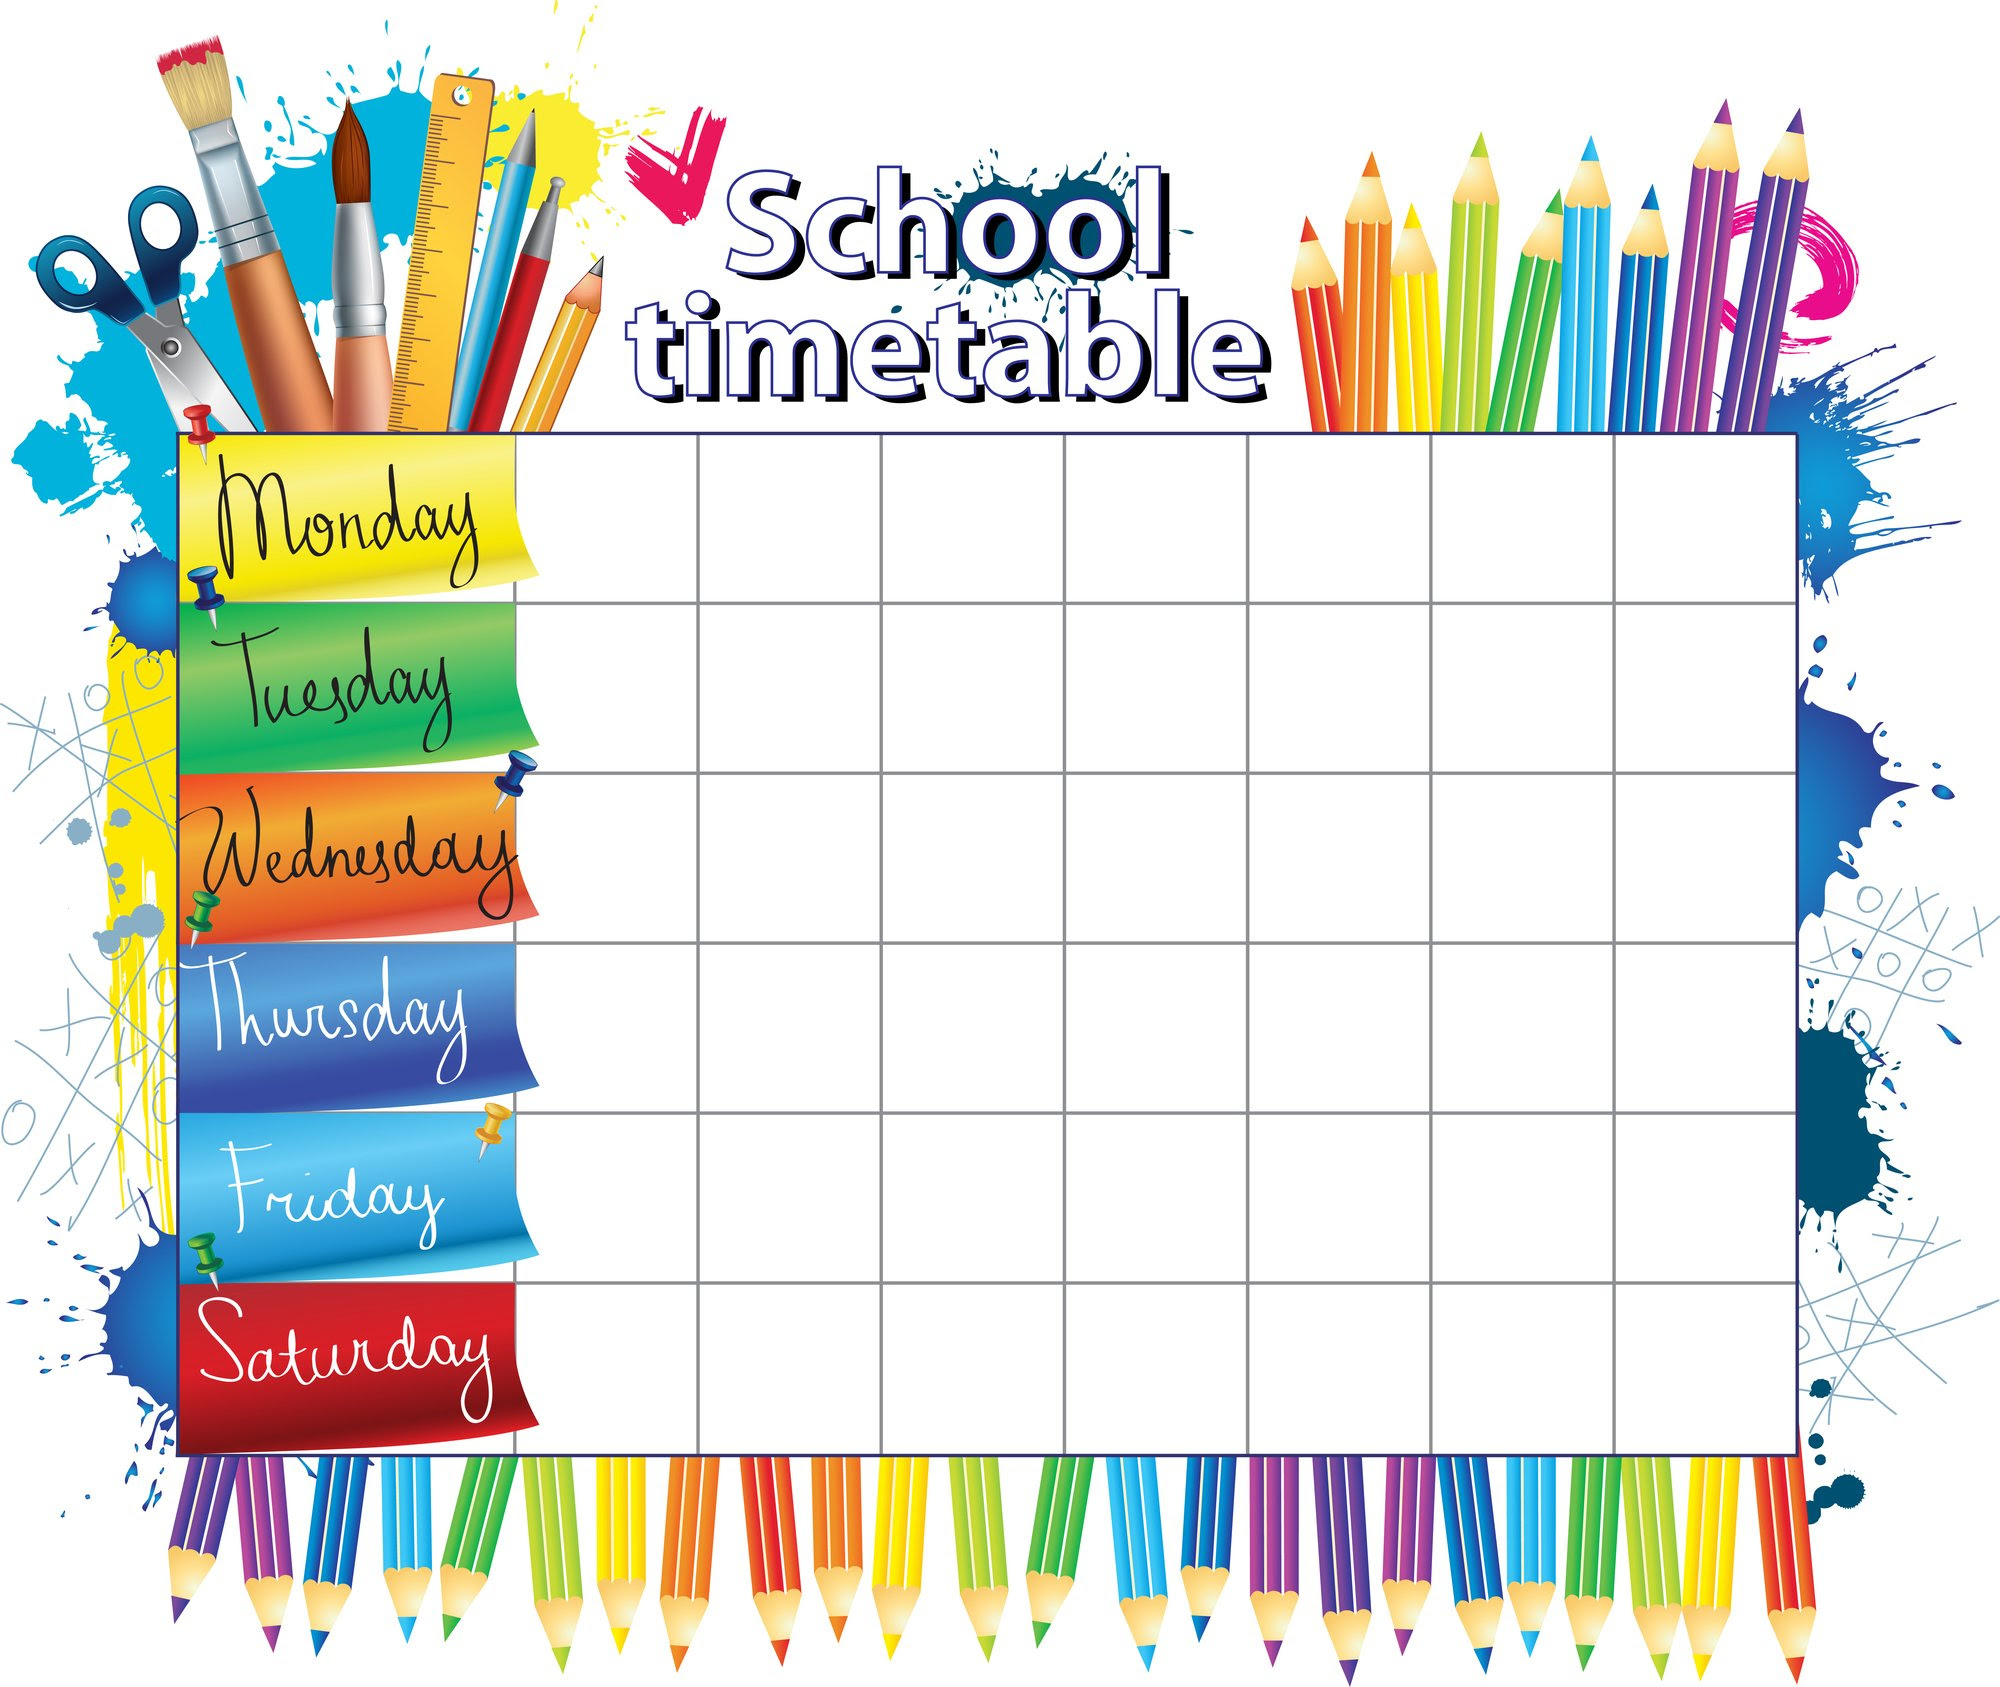 Daily Schedule School | Daily Planner